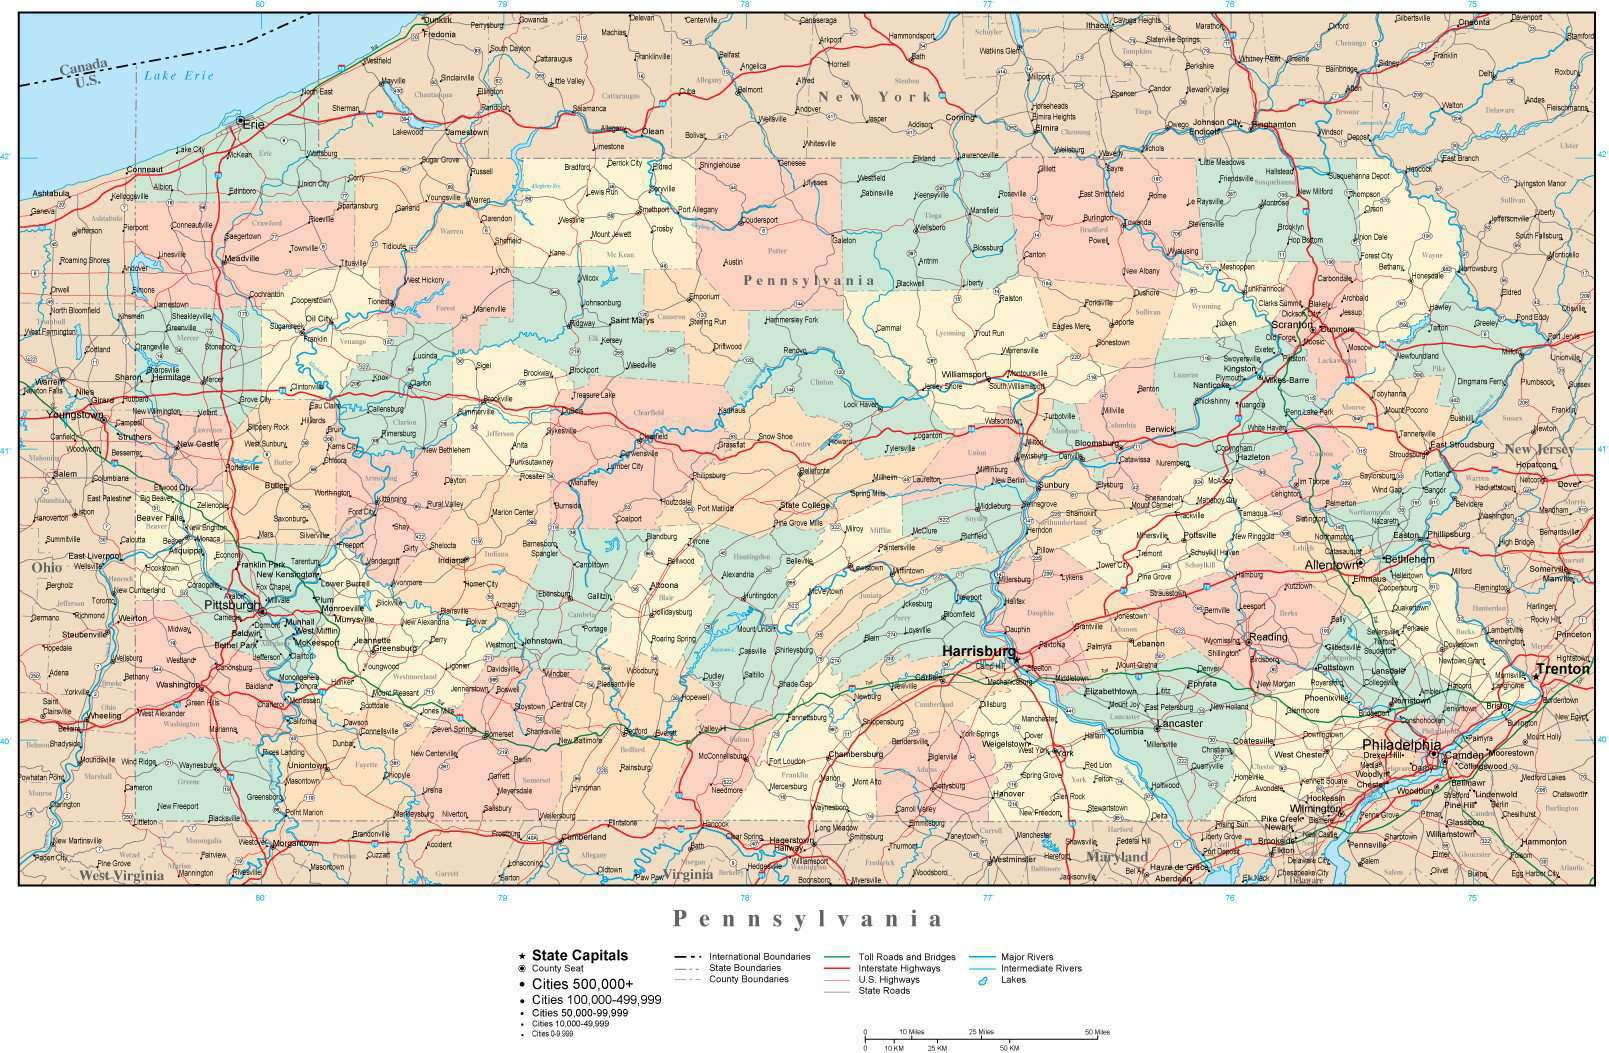 Pennsylvania Adobe Illustrator Map with Counties, Cities, County ...